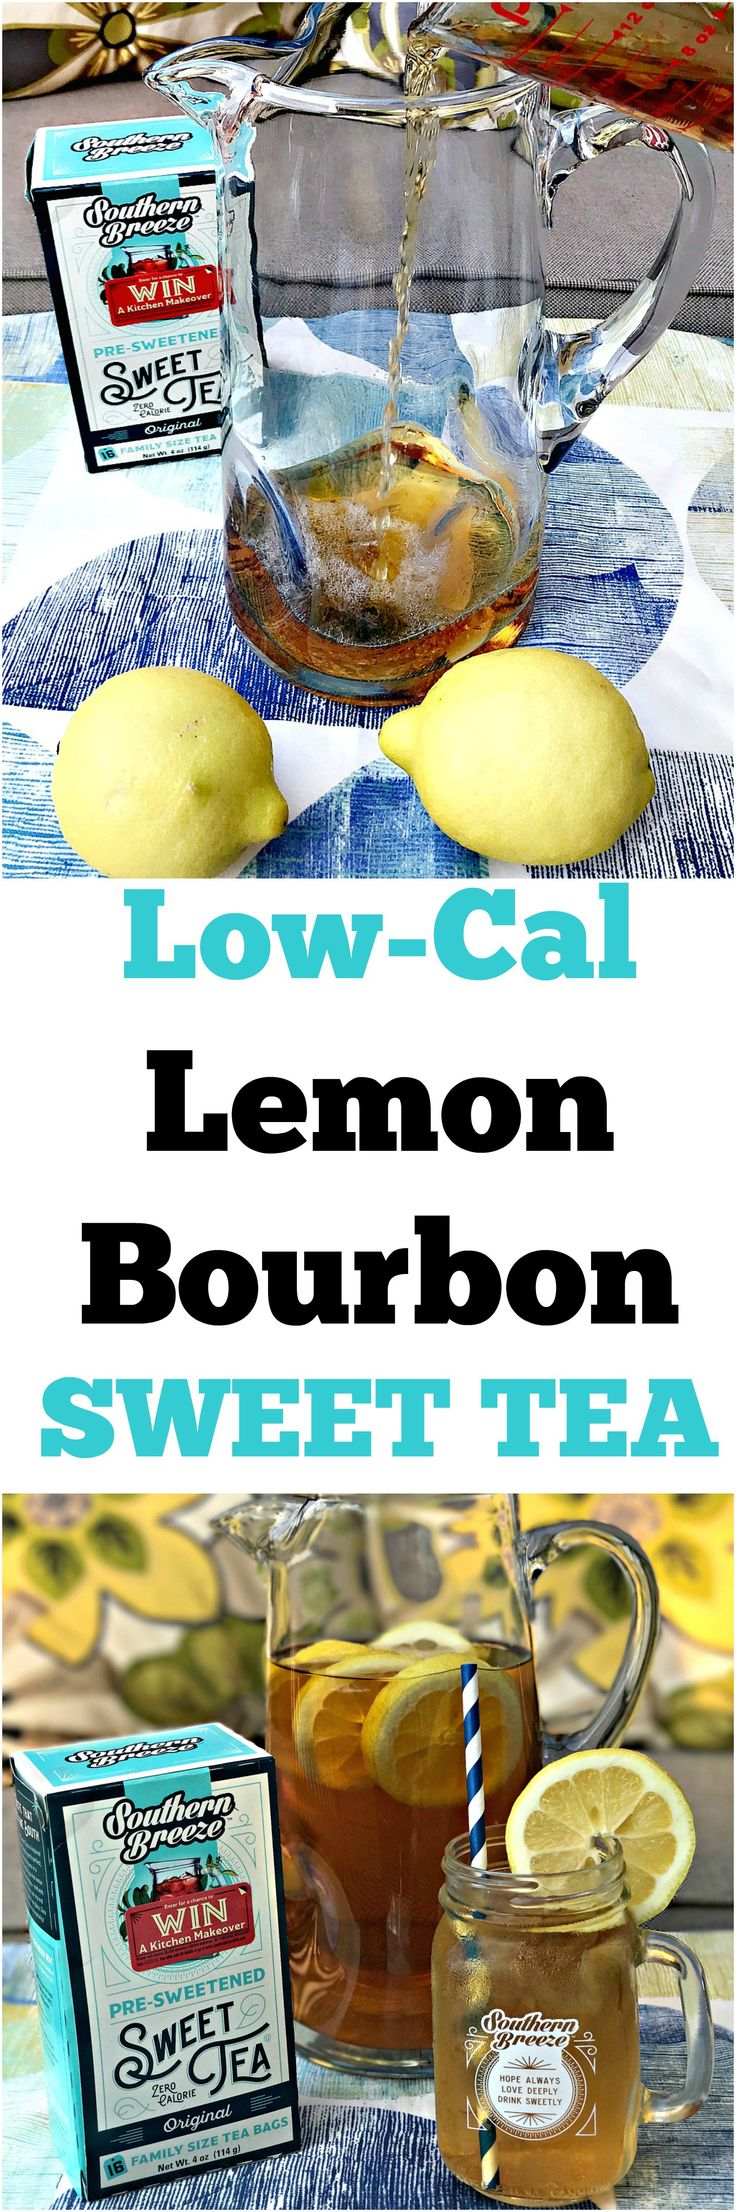 Sweet Tea Lemon Bourbon Cocktail is low-calorie and guilt-free with fresh lemon and bourbon whiskey perfect for summer gatherings and events. @sbreezetea